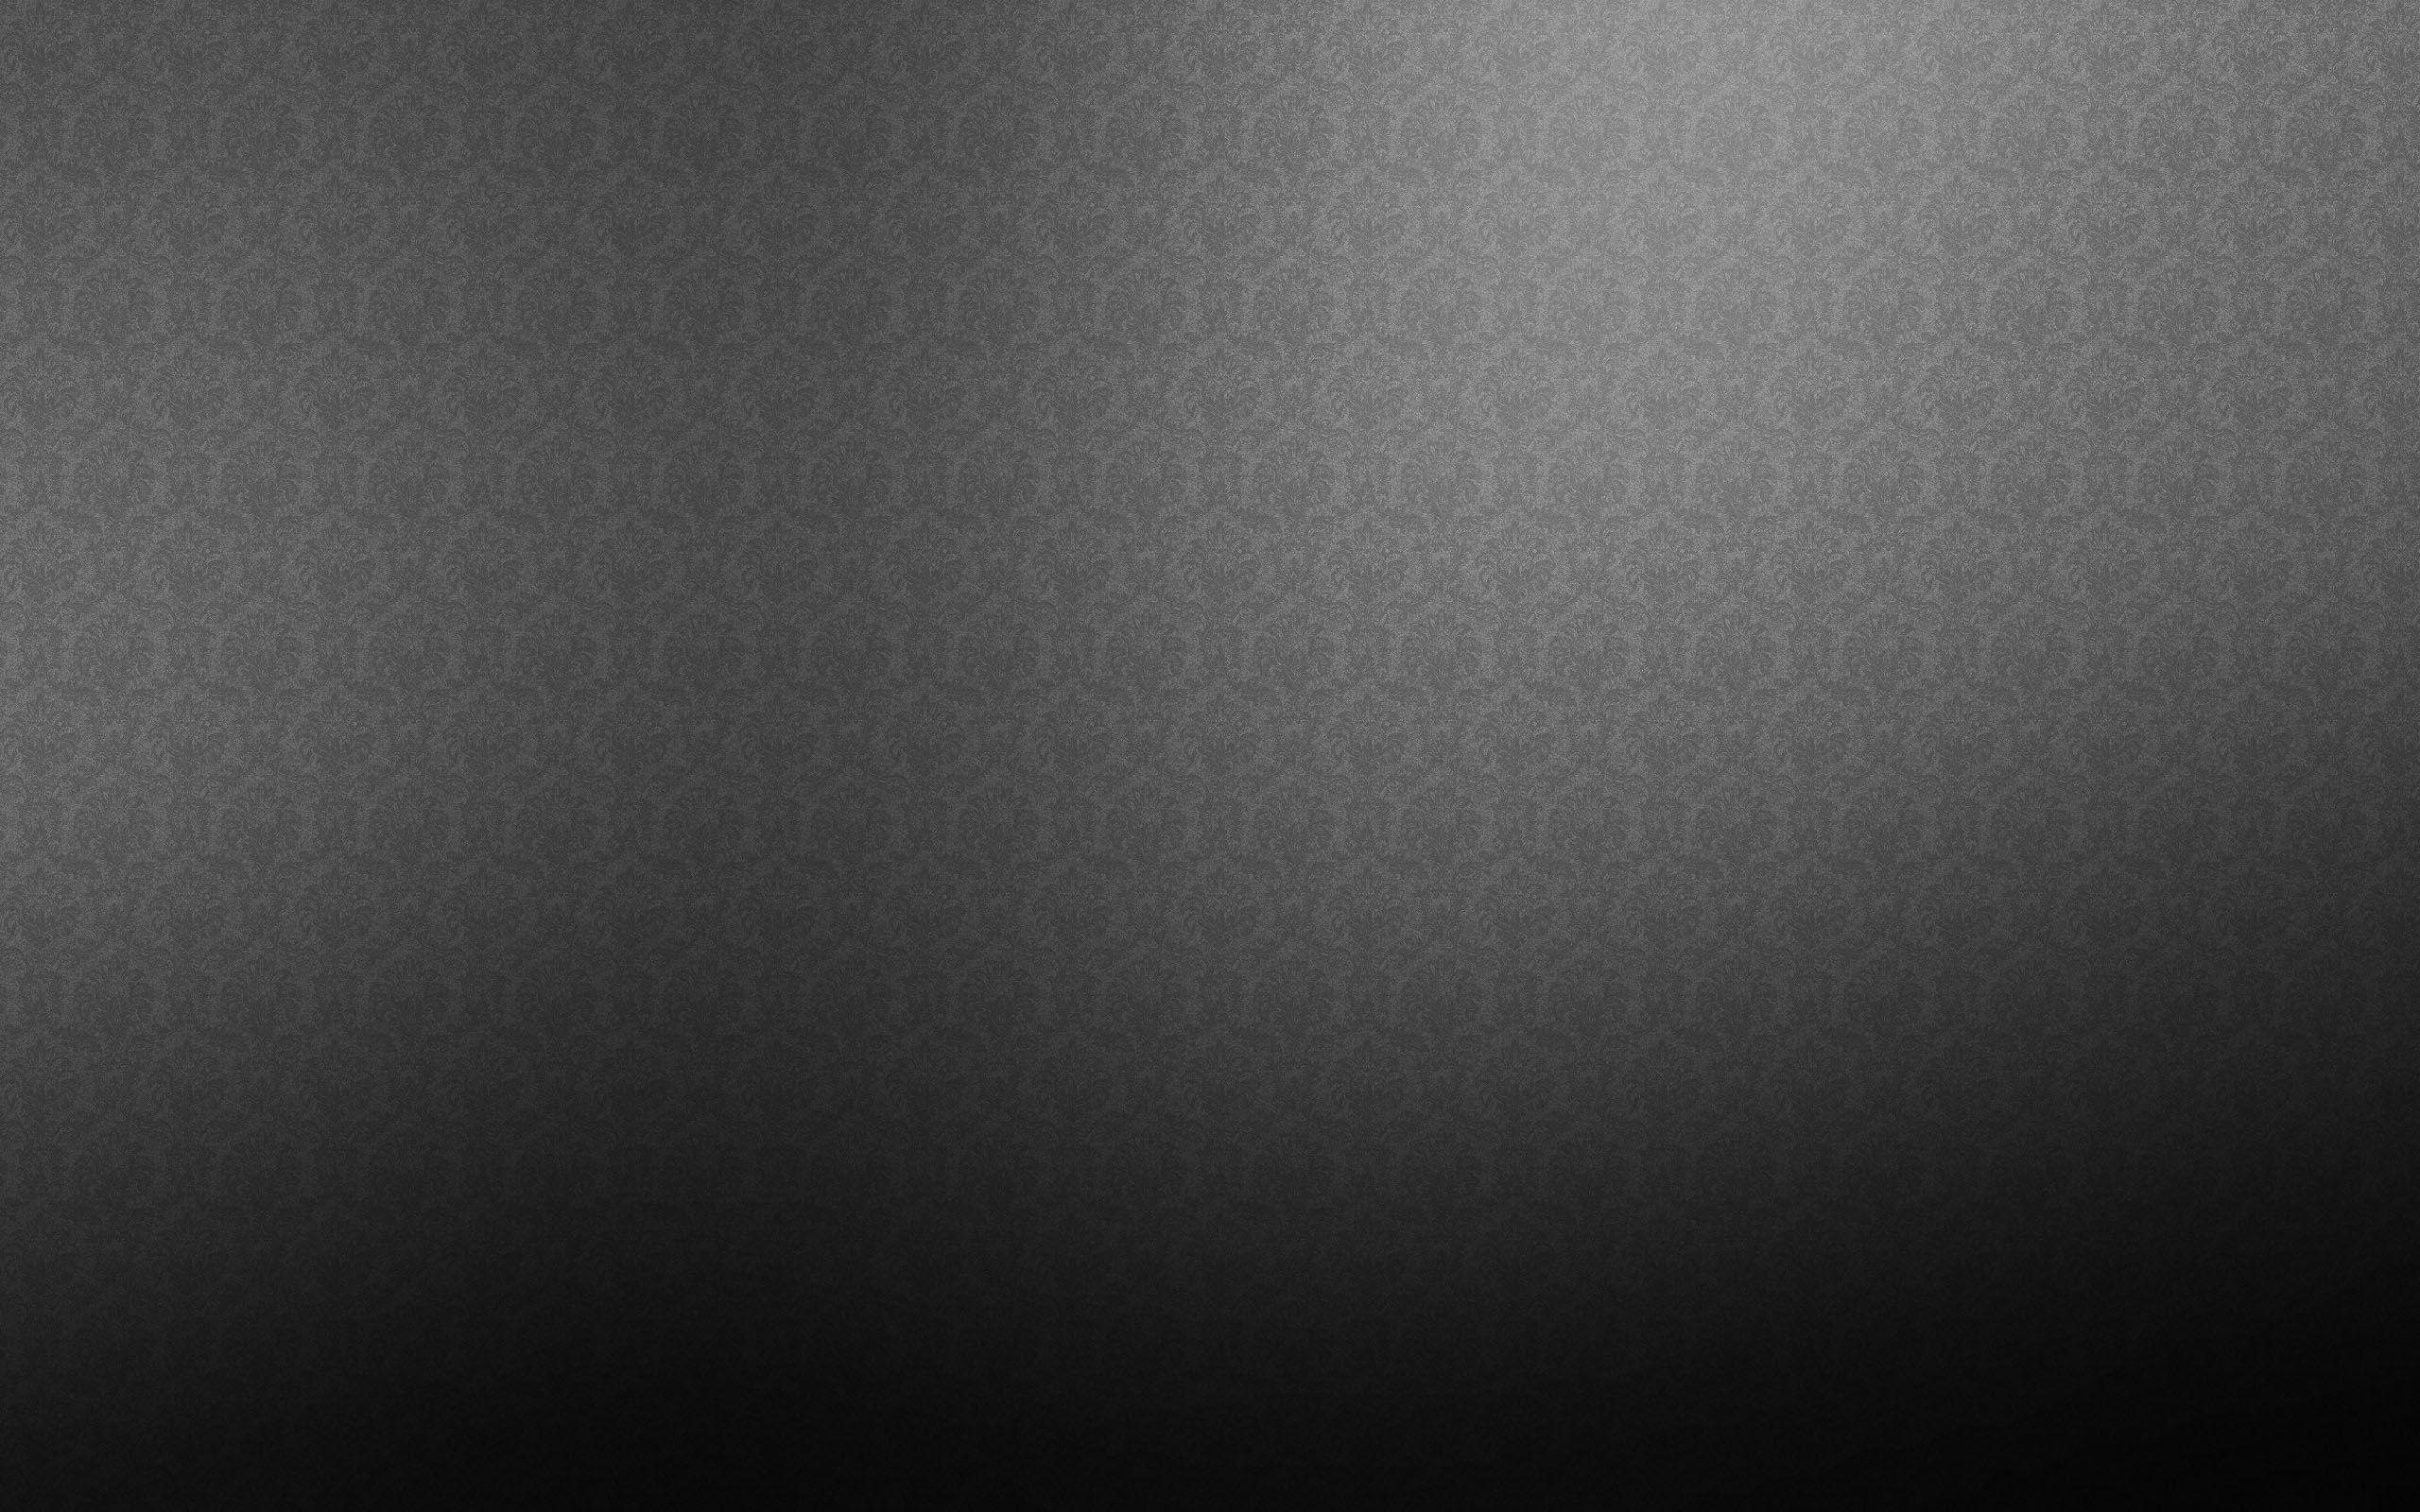 Cricket Gray Gradient Wallpapers 2560x1600 px Free Download